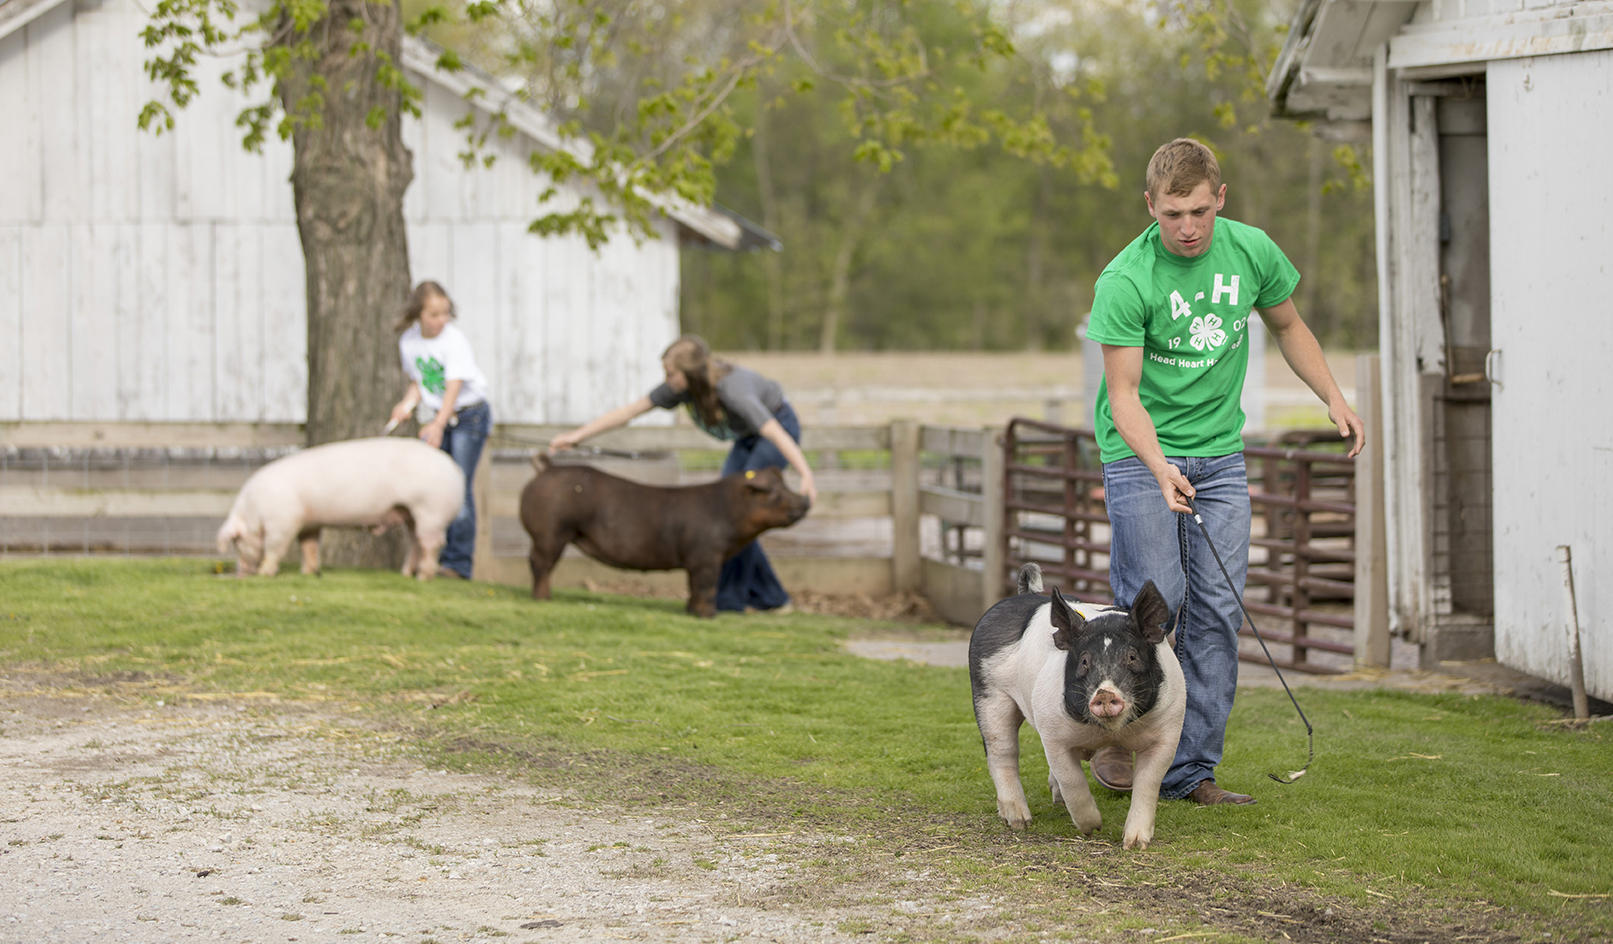 4-H members working with show pigs in a barnyard